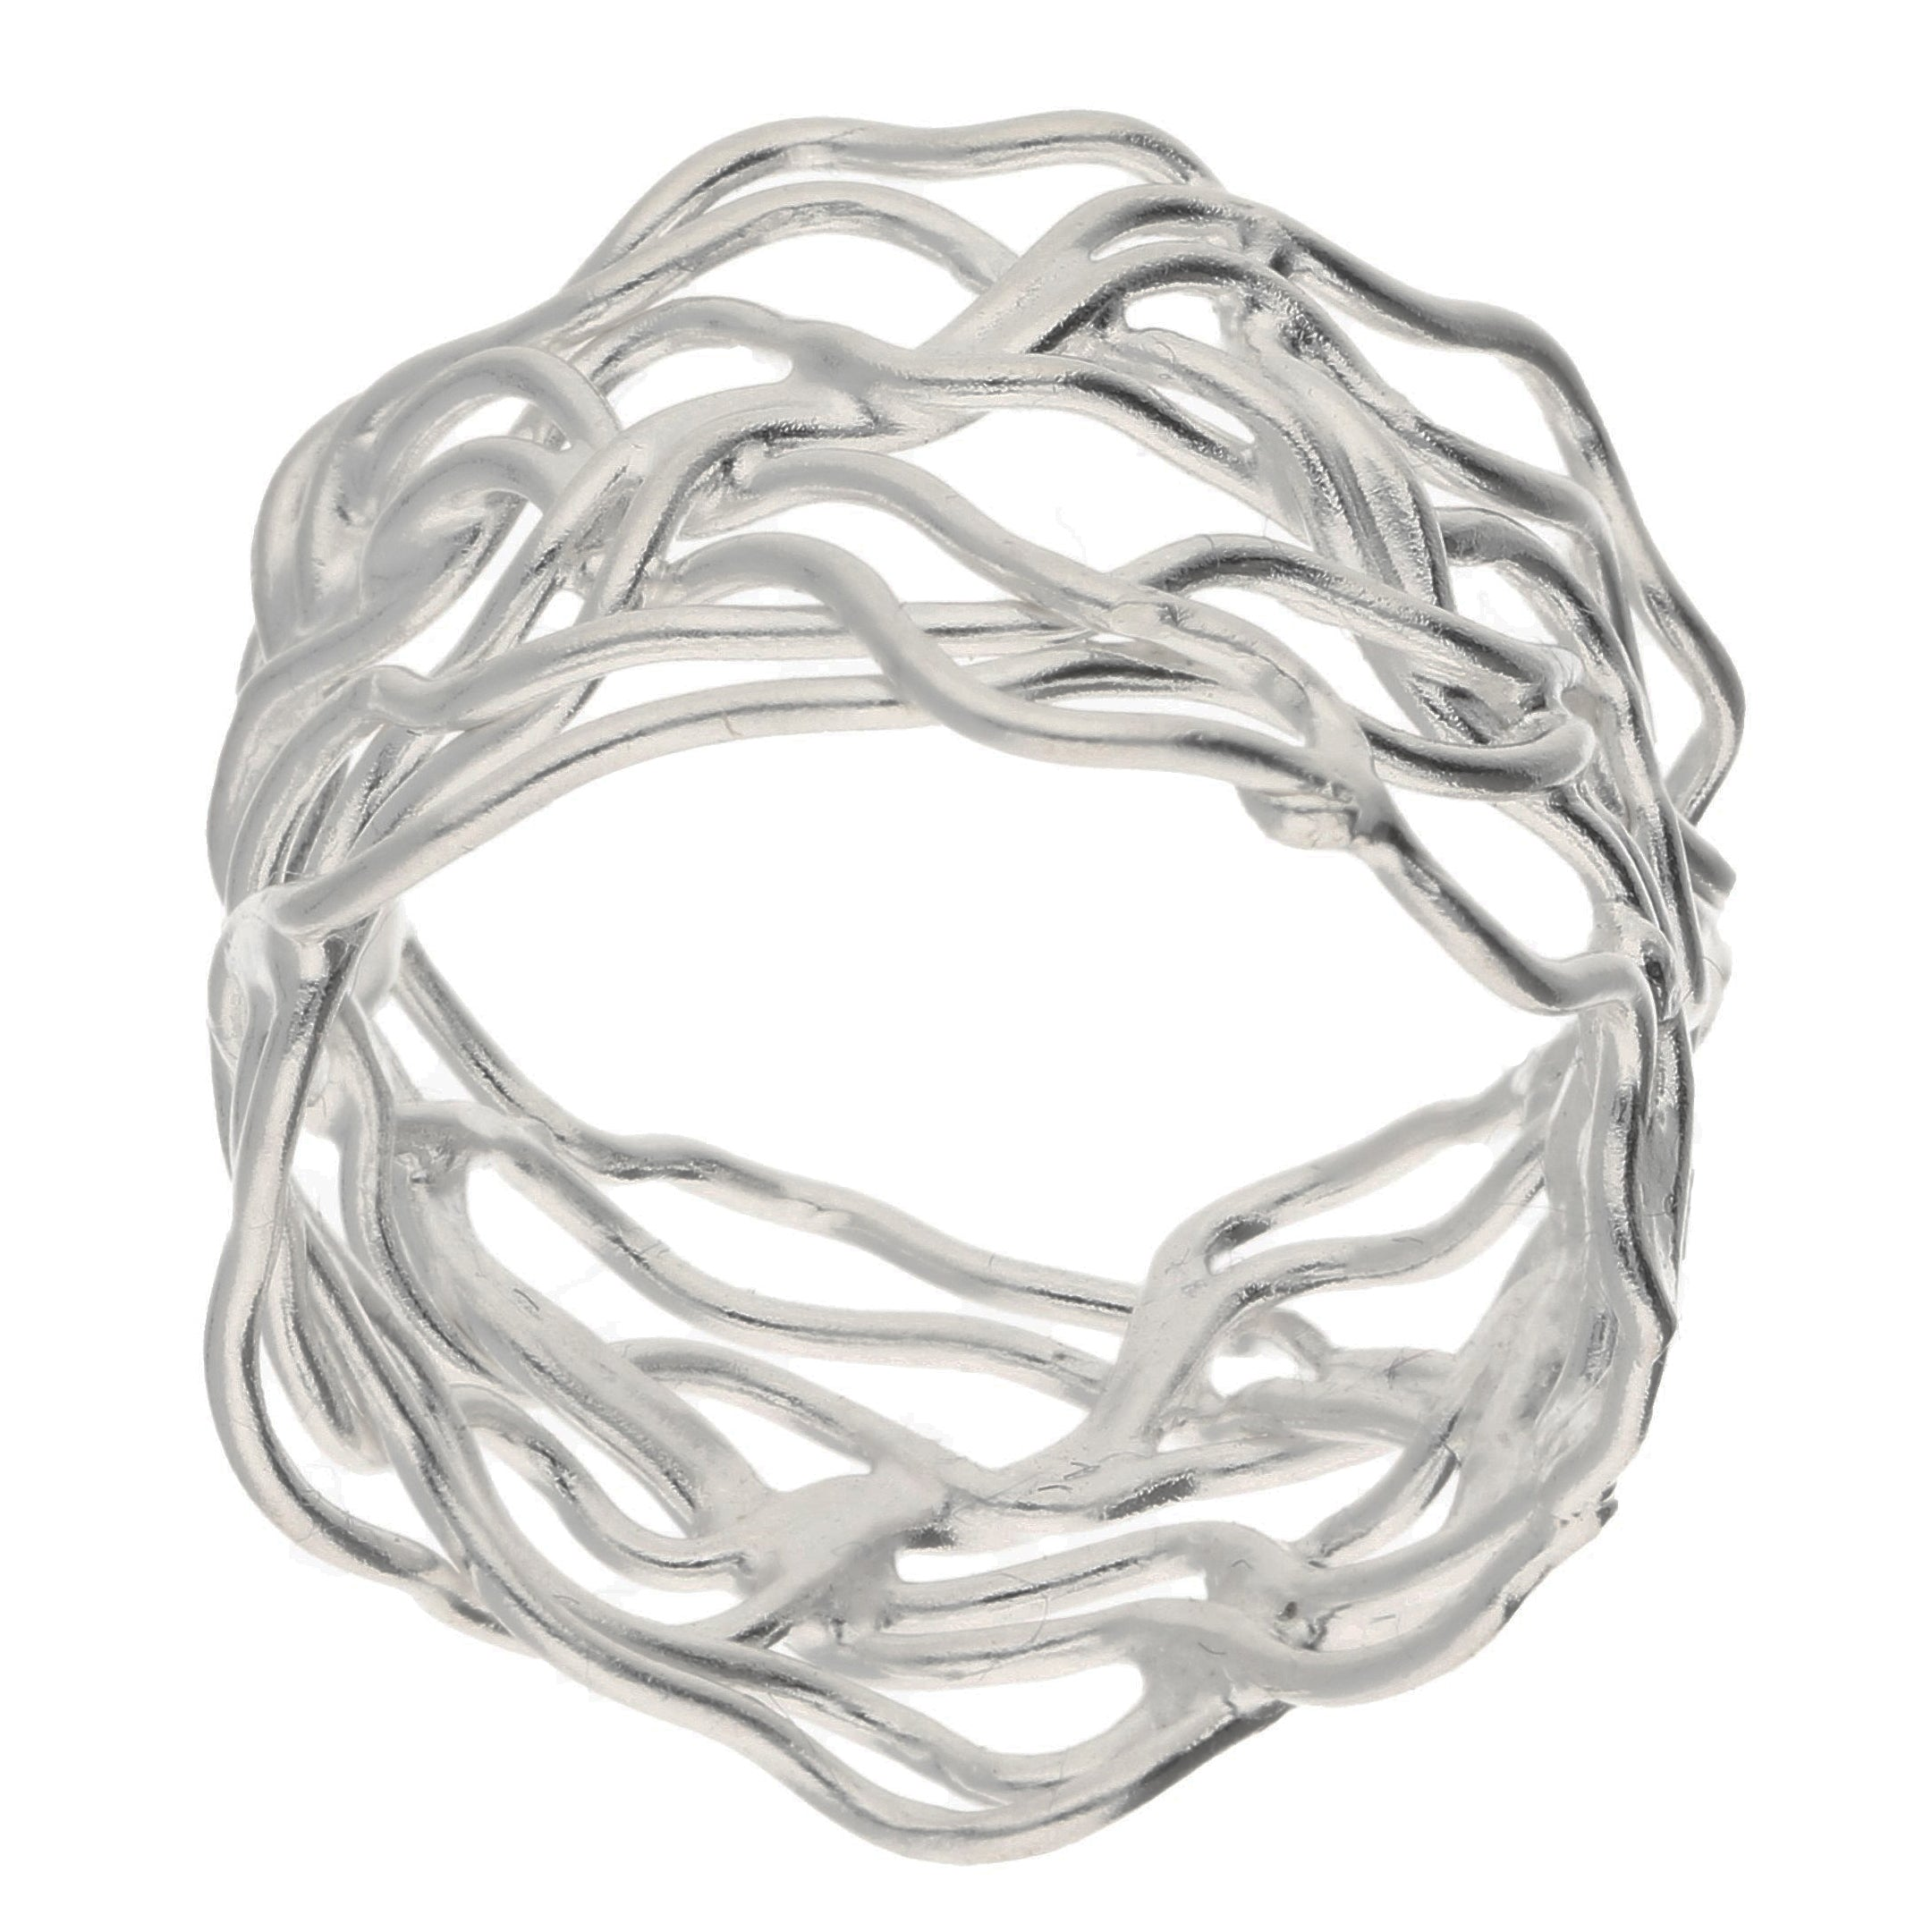 Unique Filigree Wirework Wide Band Sterling Silver Ring - Silver Insanity